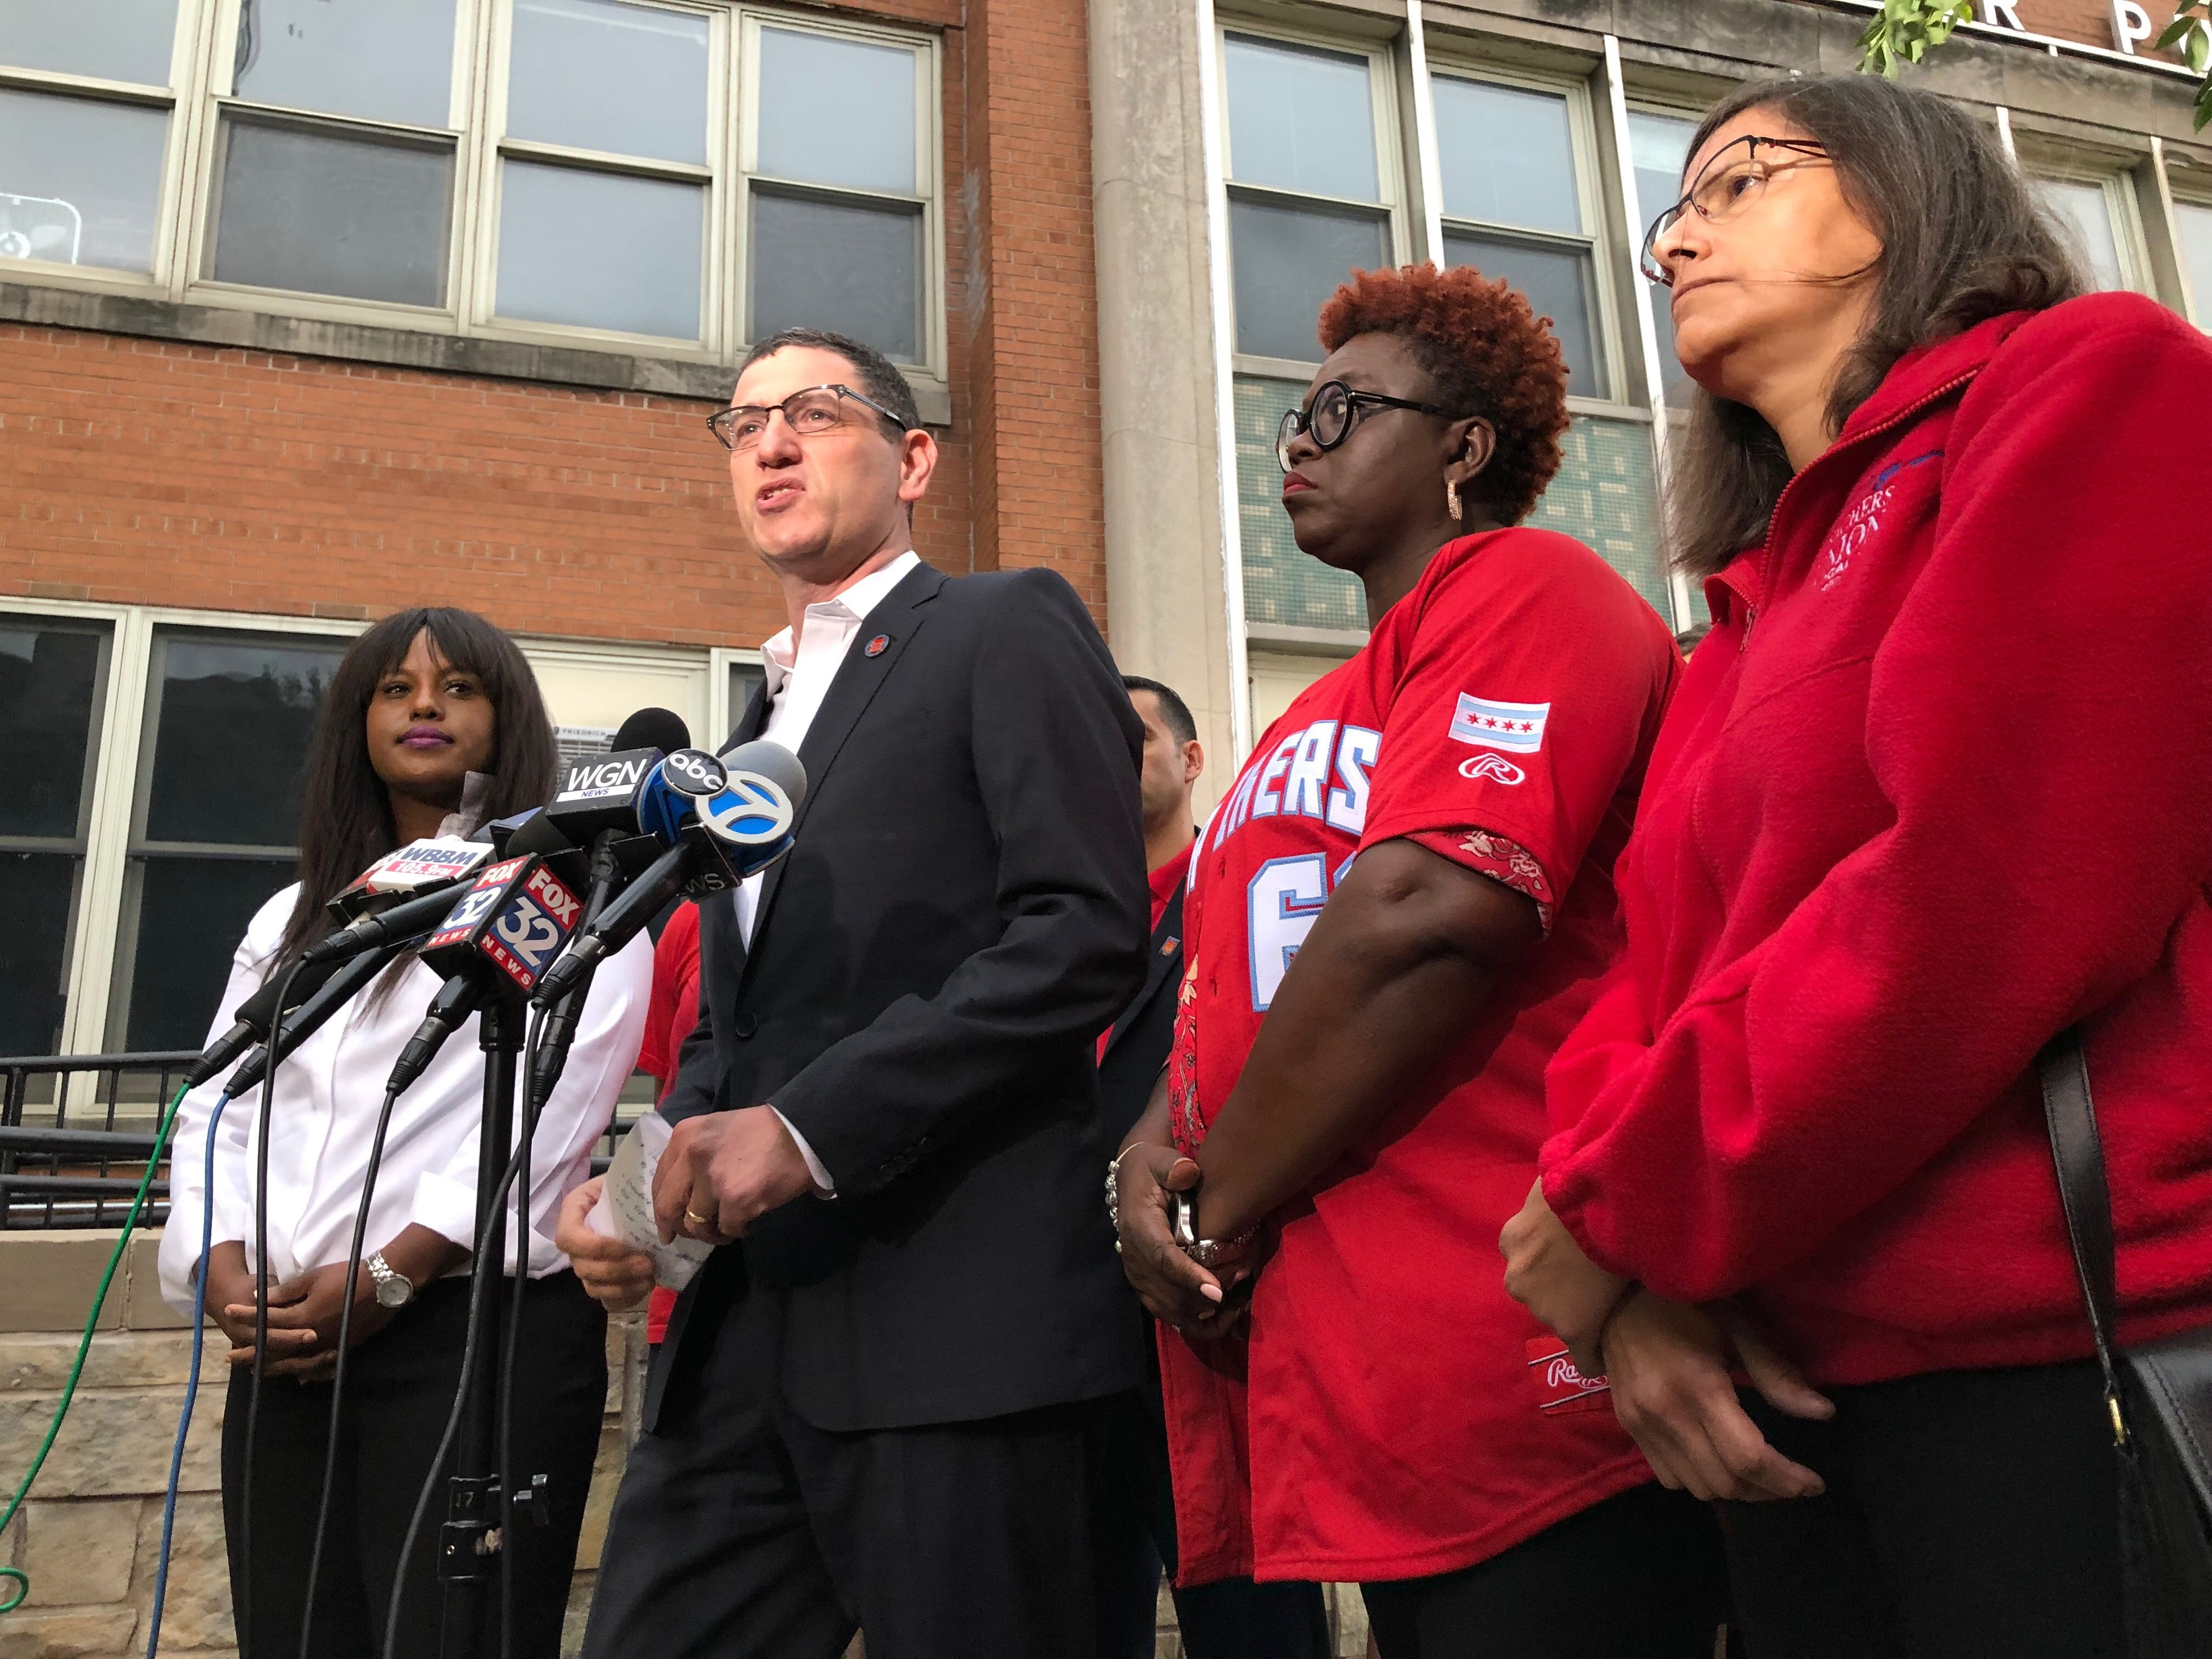 Jesse Sharkey, president of the Chicago Teachers Union, spoke in August 2019 at a press conference after the union rejected a neutral fact-finder's proposal, officially launching a countdown to a strike.